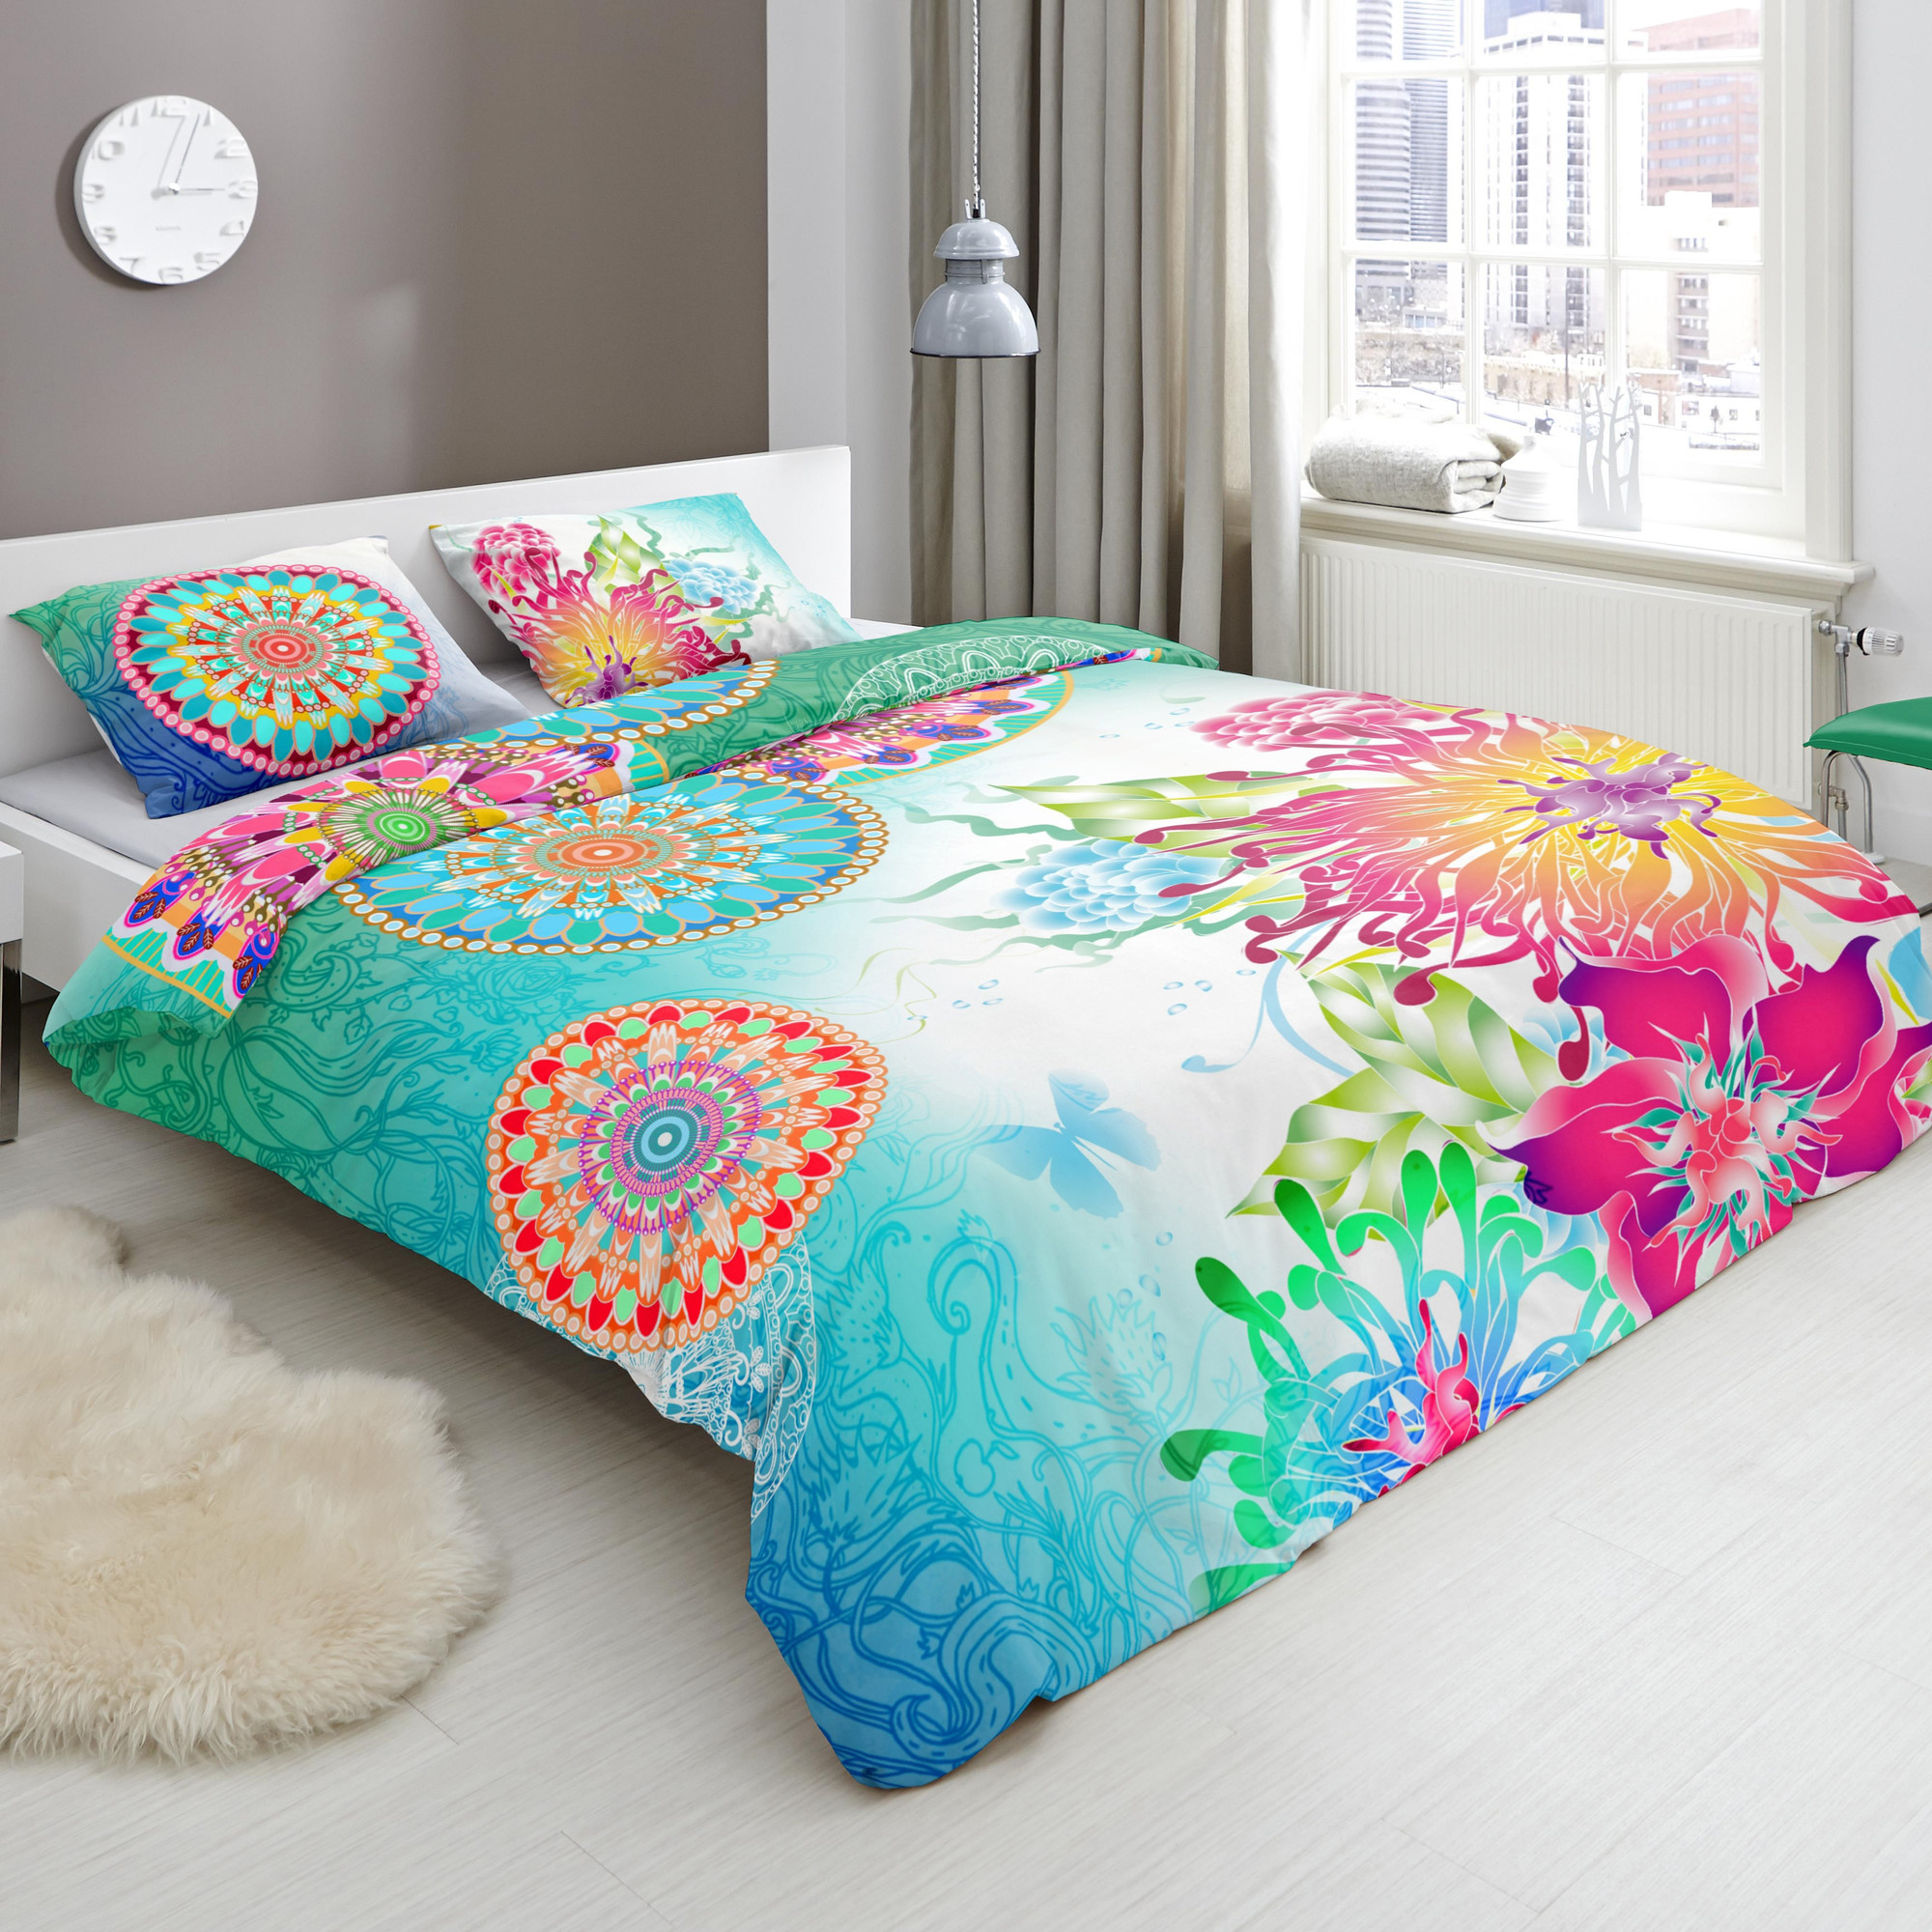 hip comforters hip bedding hip quilt covers hip quilt cover set  - hip bedding